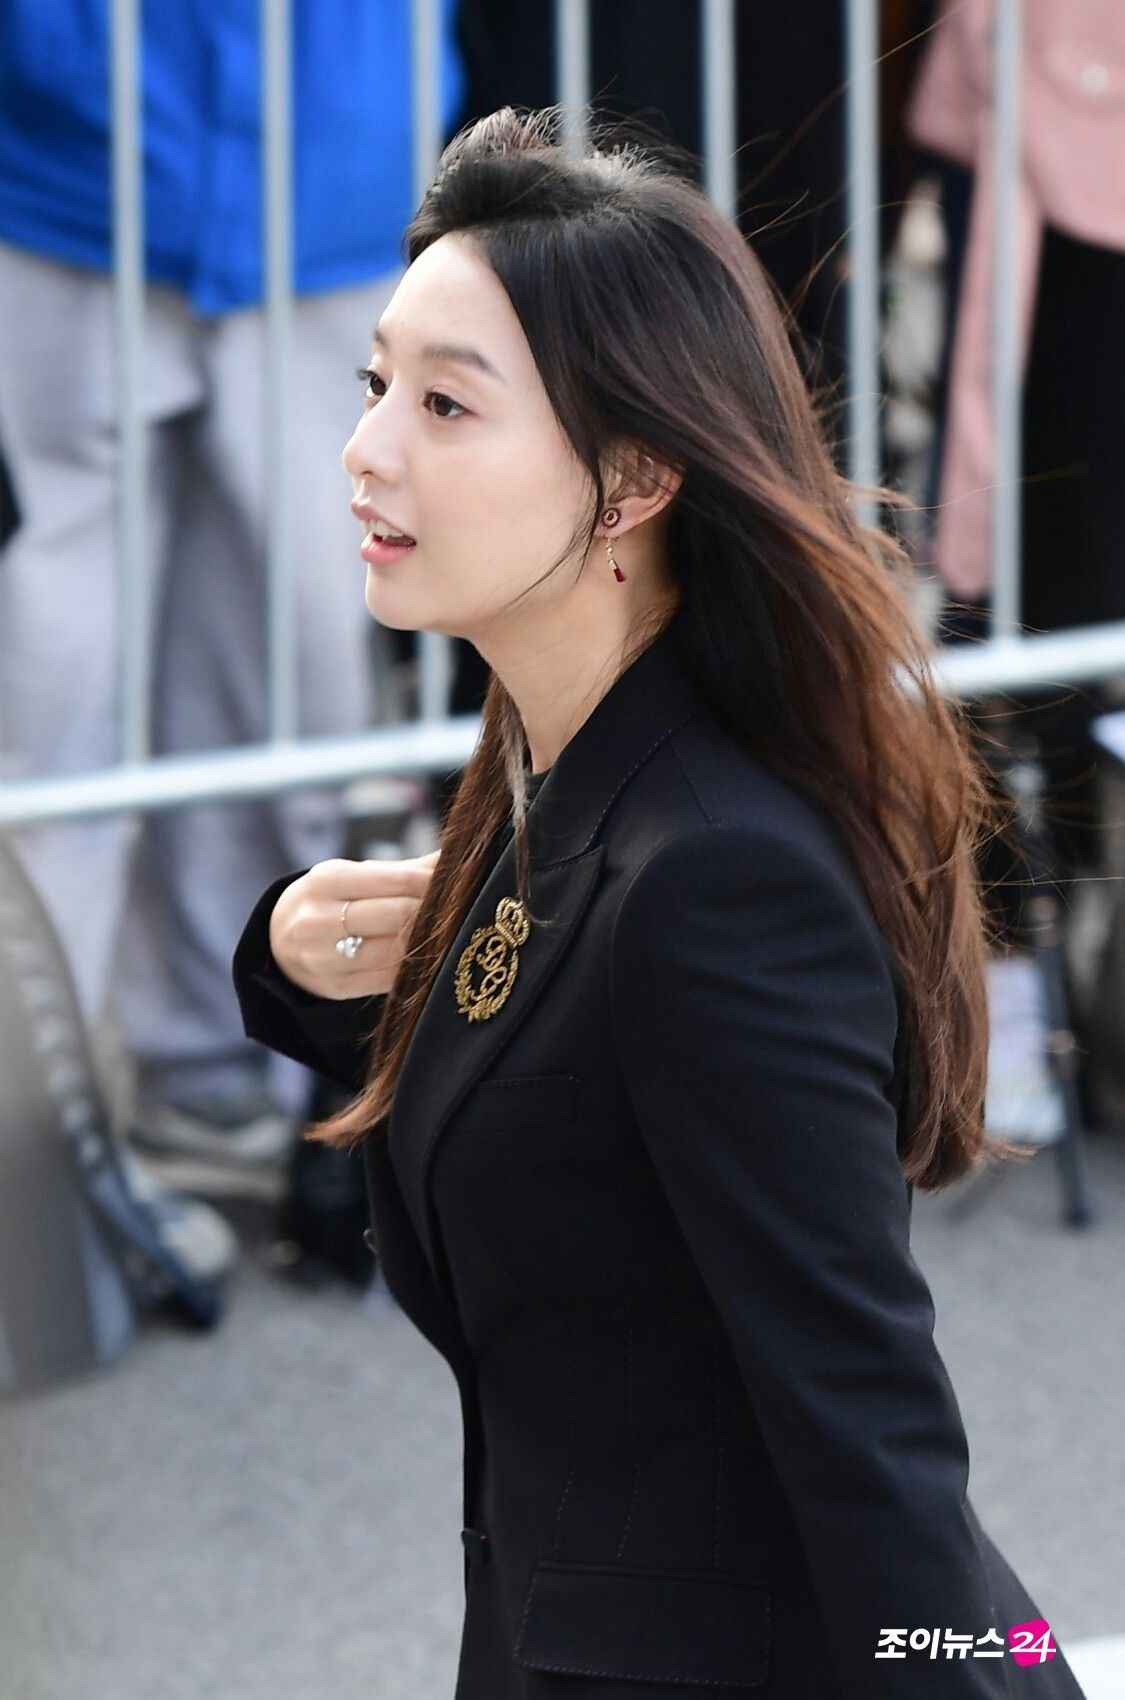 Pin by nancy on The heirs (With images) | Kim ji won, Kim ...